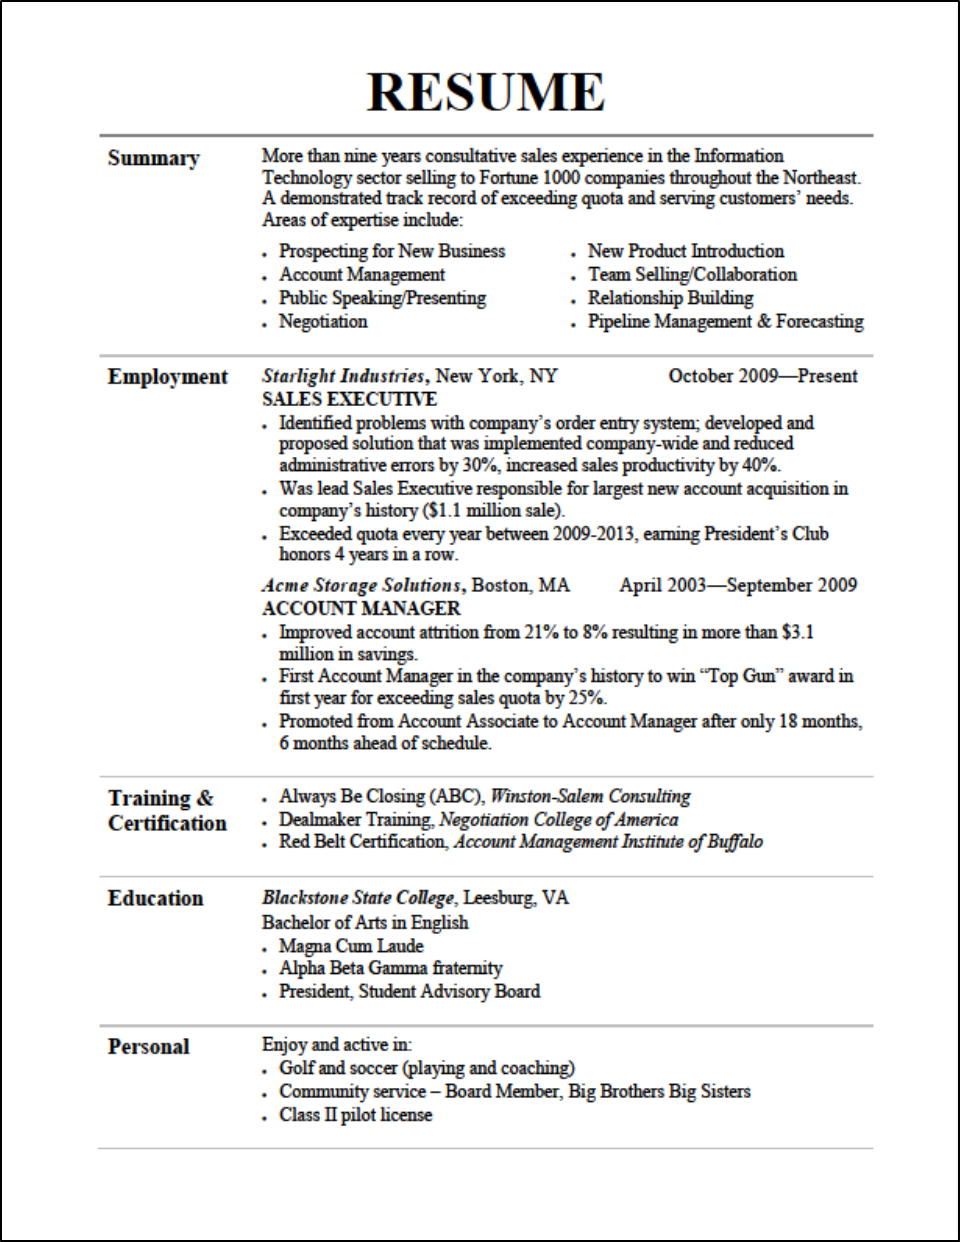 Free Resume Template Or Tips Magnificent Resume Editing Servicesprofessional Resume Writing Services That